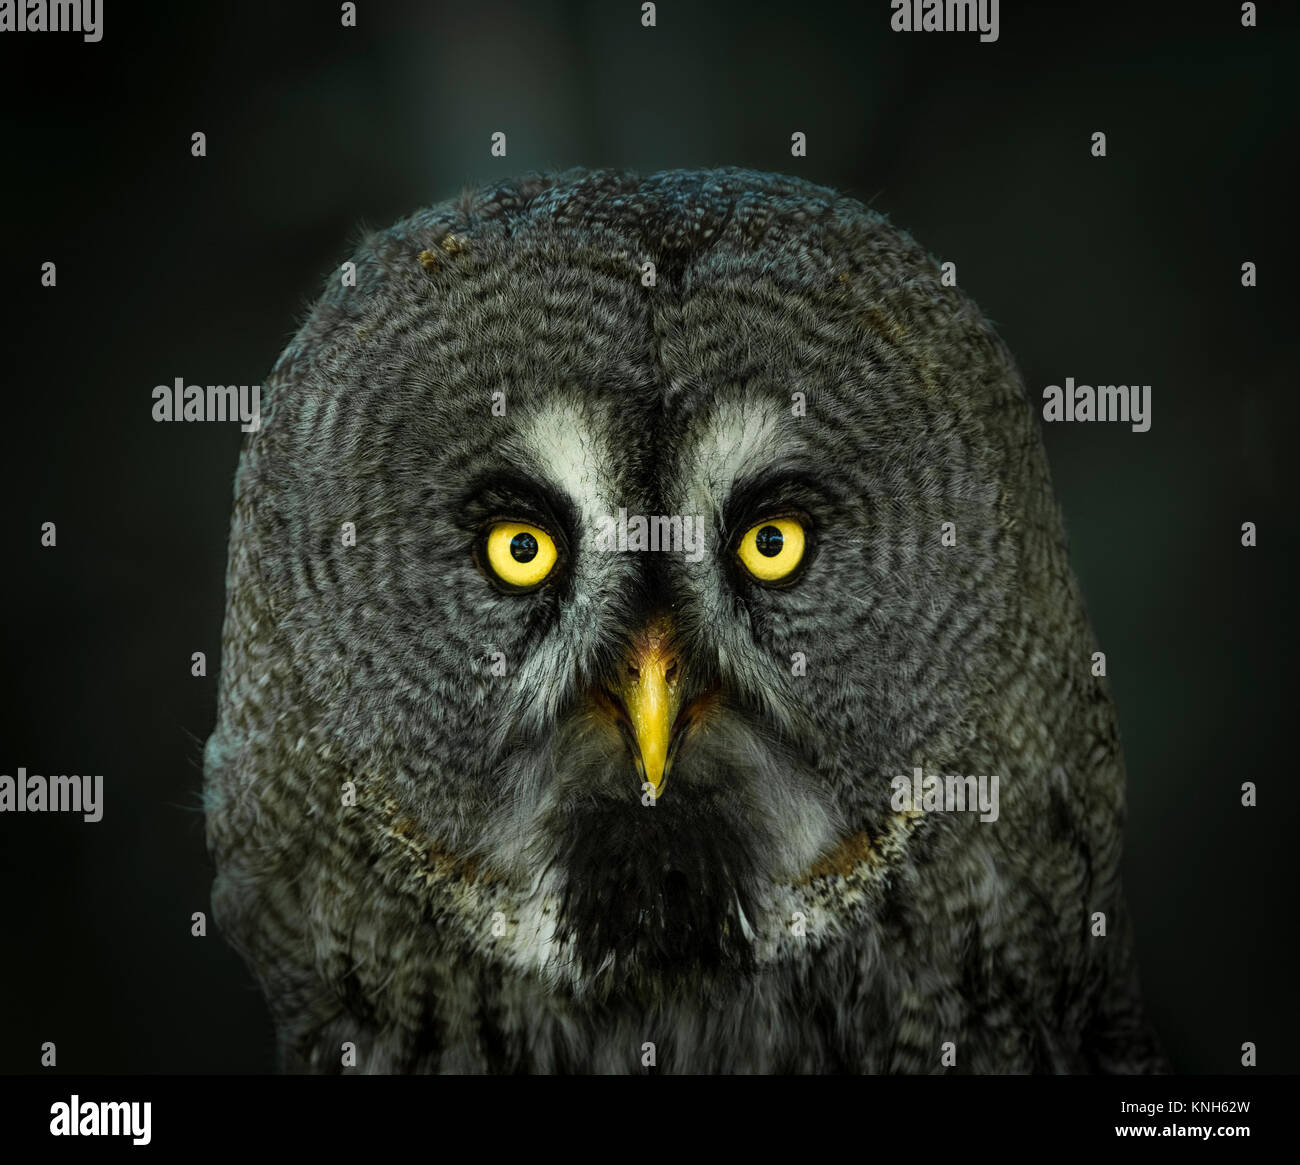 Gray Owl portrait. - Stock Image